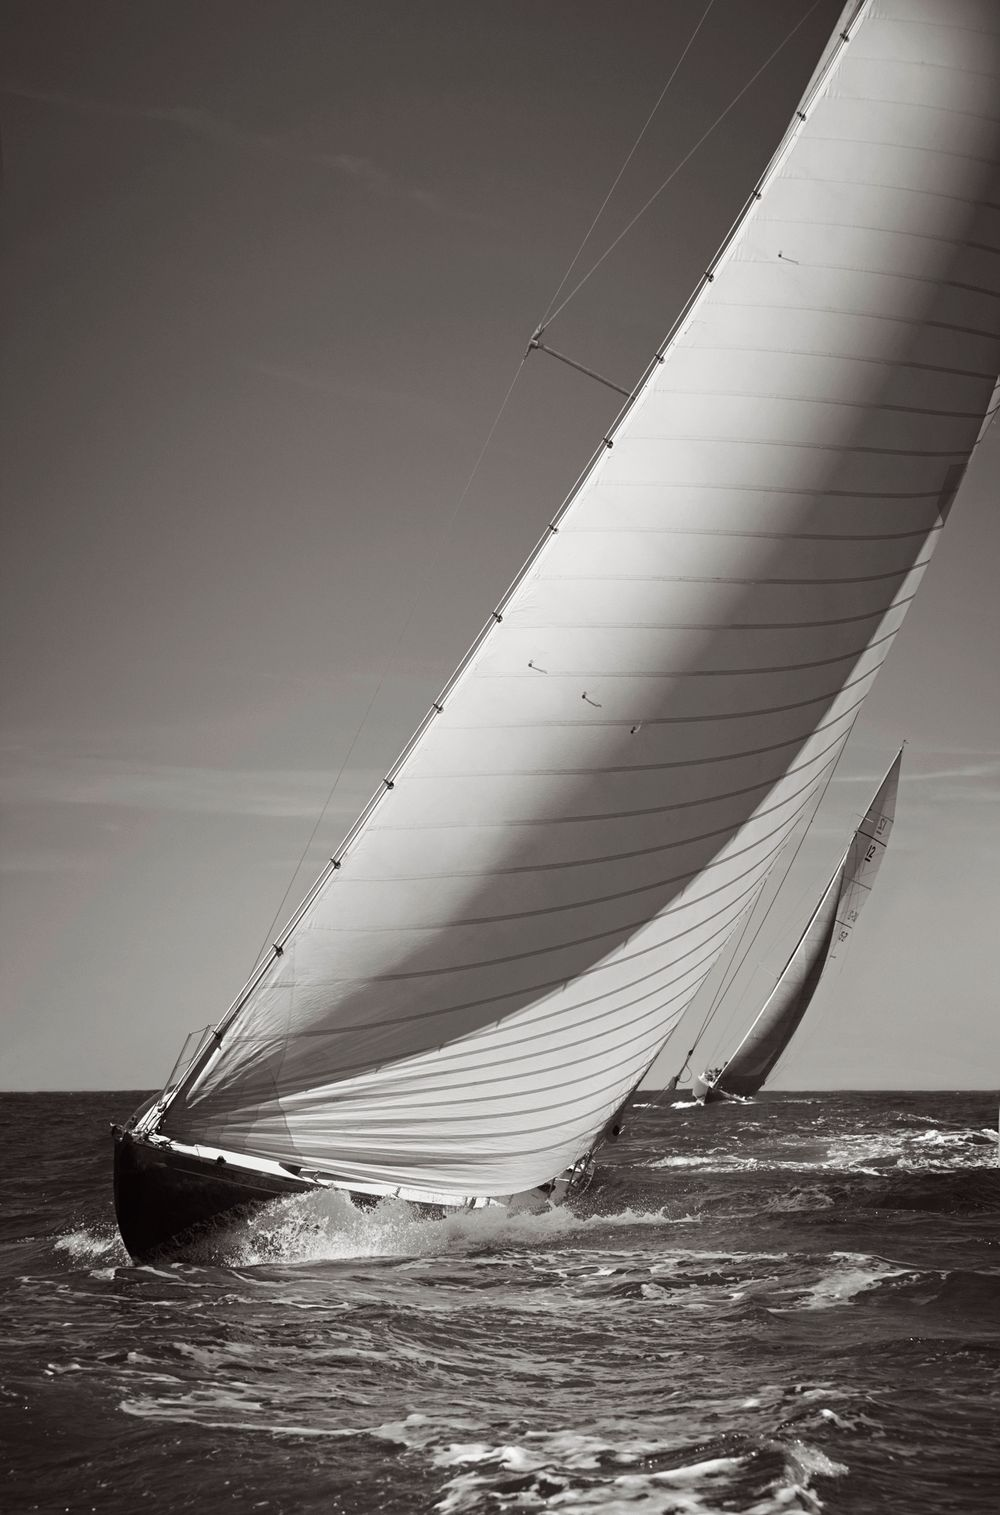 Sail-Majesty-at-Sea-Drew-Doggett-In-Pursuit-of-Northern-Light.jpg